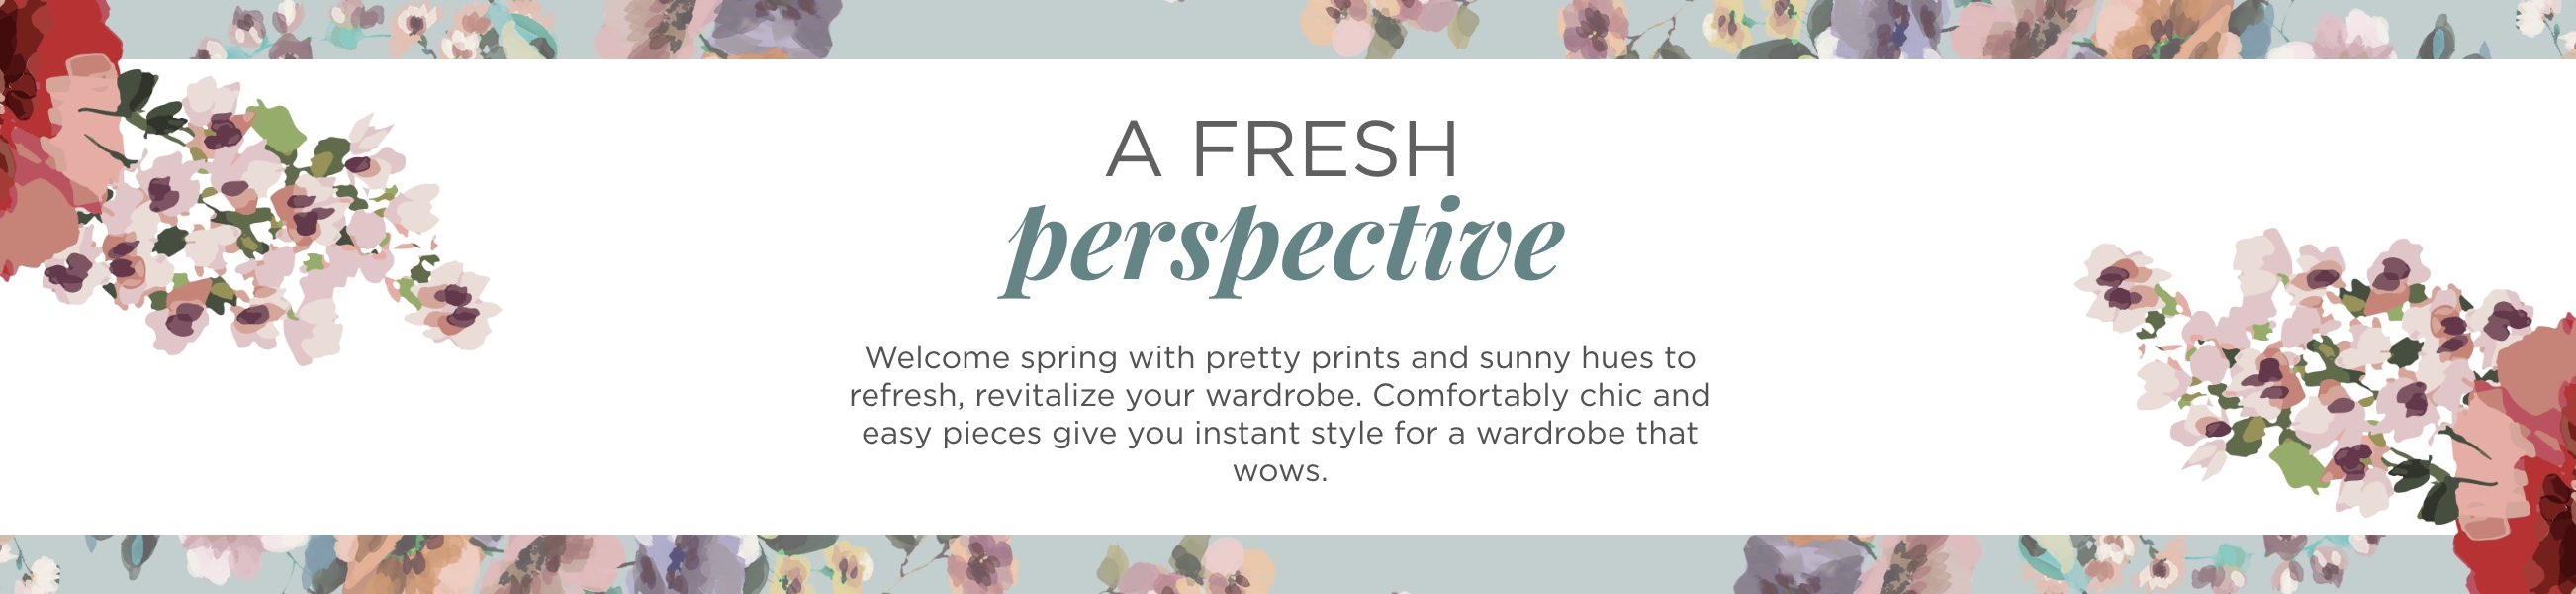 A Fresh Perspective. Welcome spring with pretty prints and sunny hues redy to refresh, revitalize your wardrobe. Comfortably chic and easy pieces give you instant style for a wardrobe that wows.